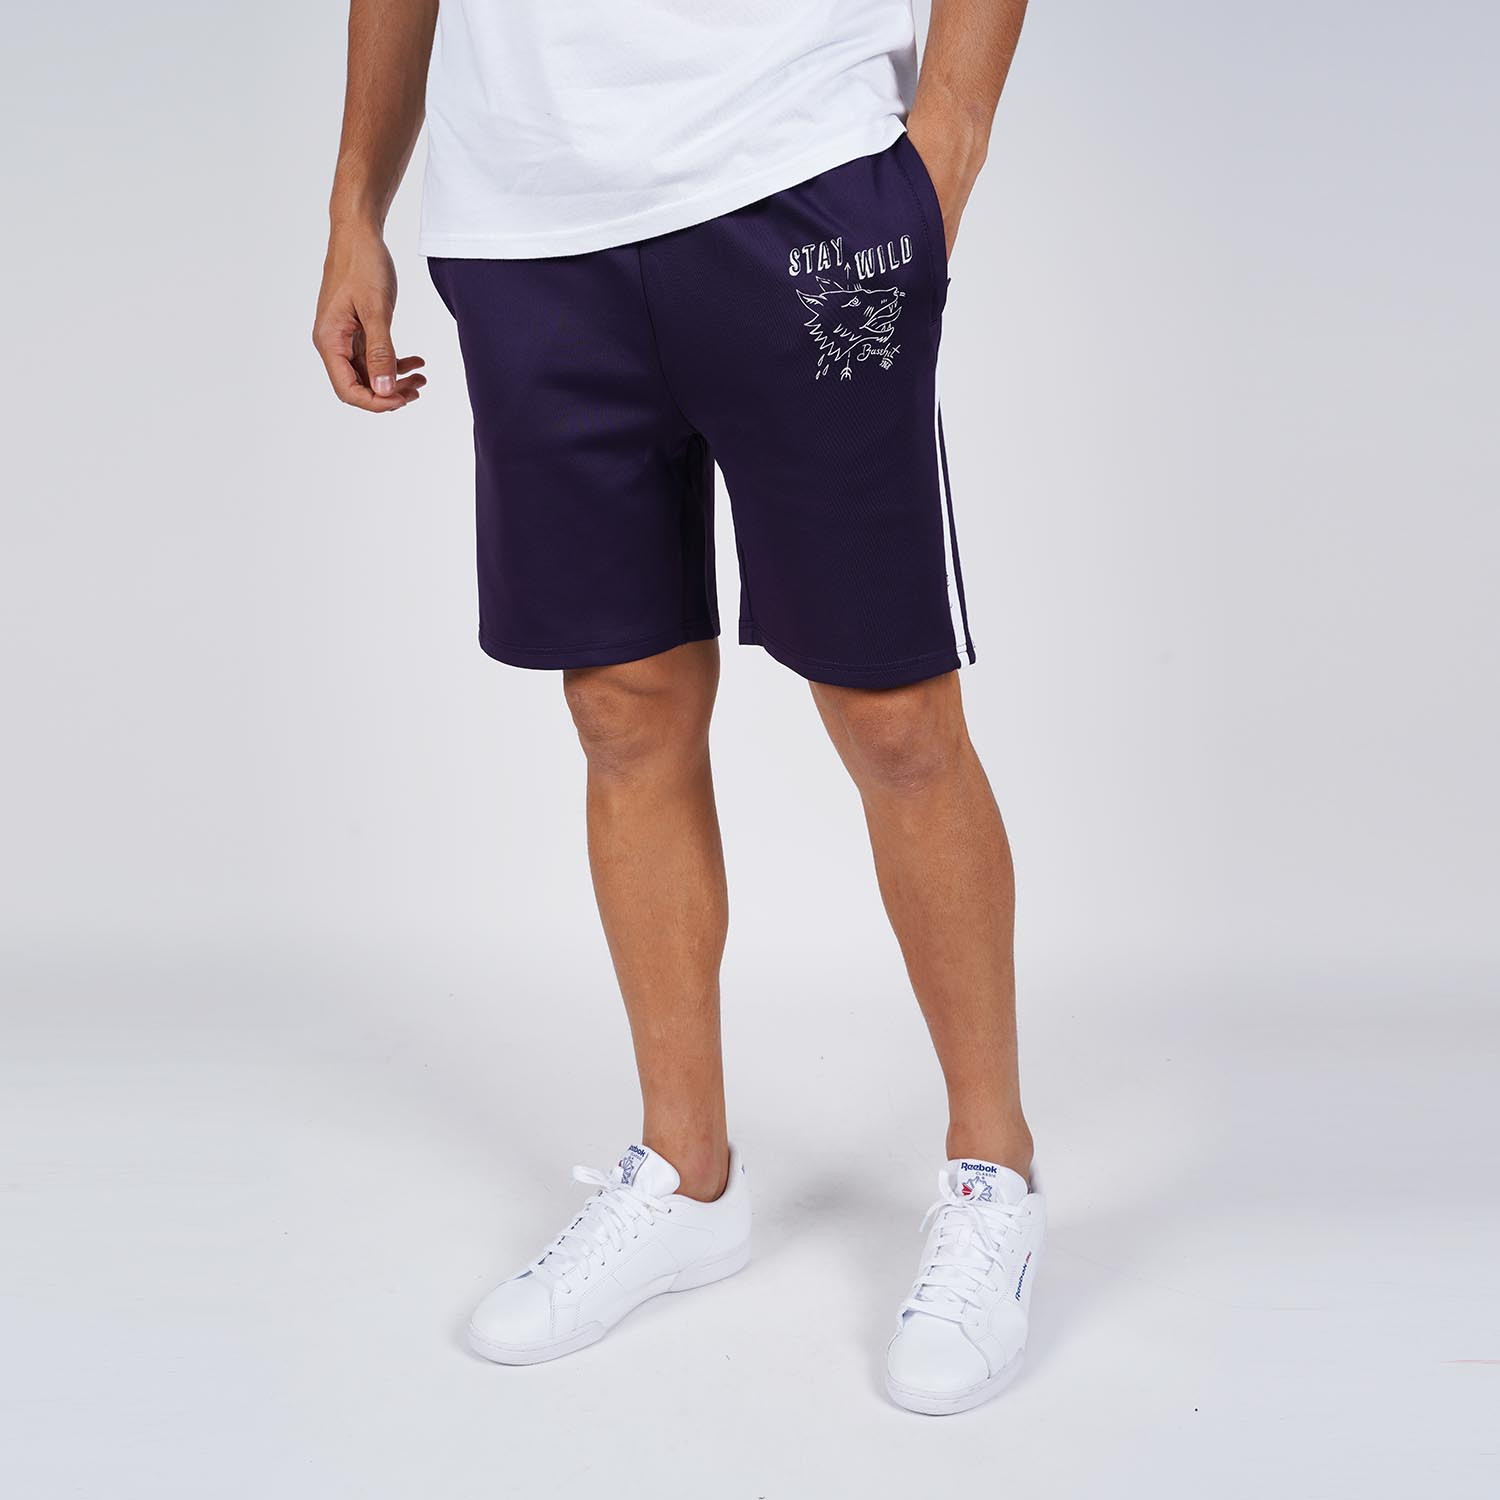 Basehit Men's Track Shorts (9000050787_11747)